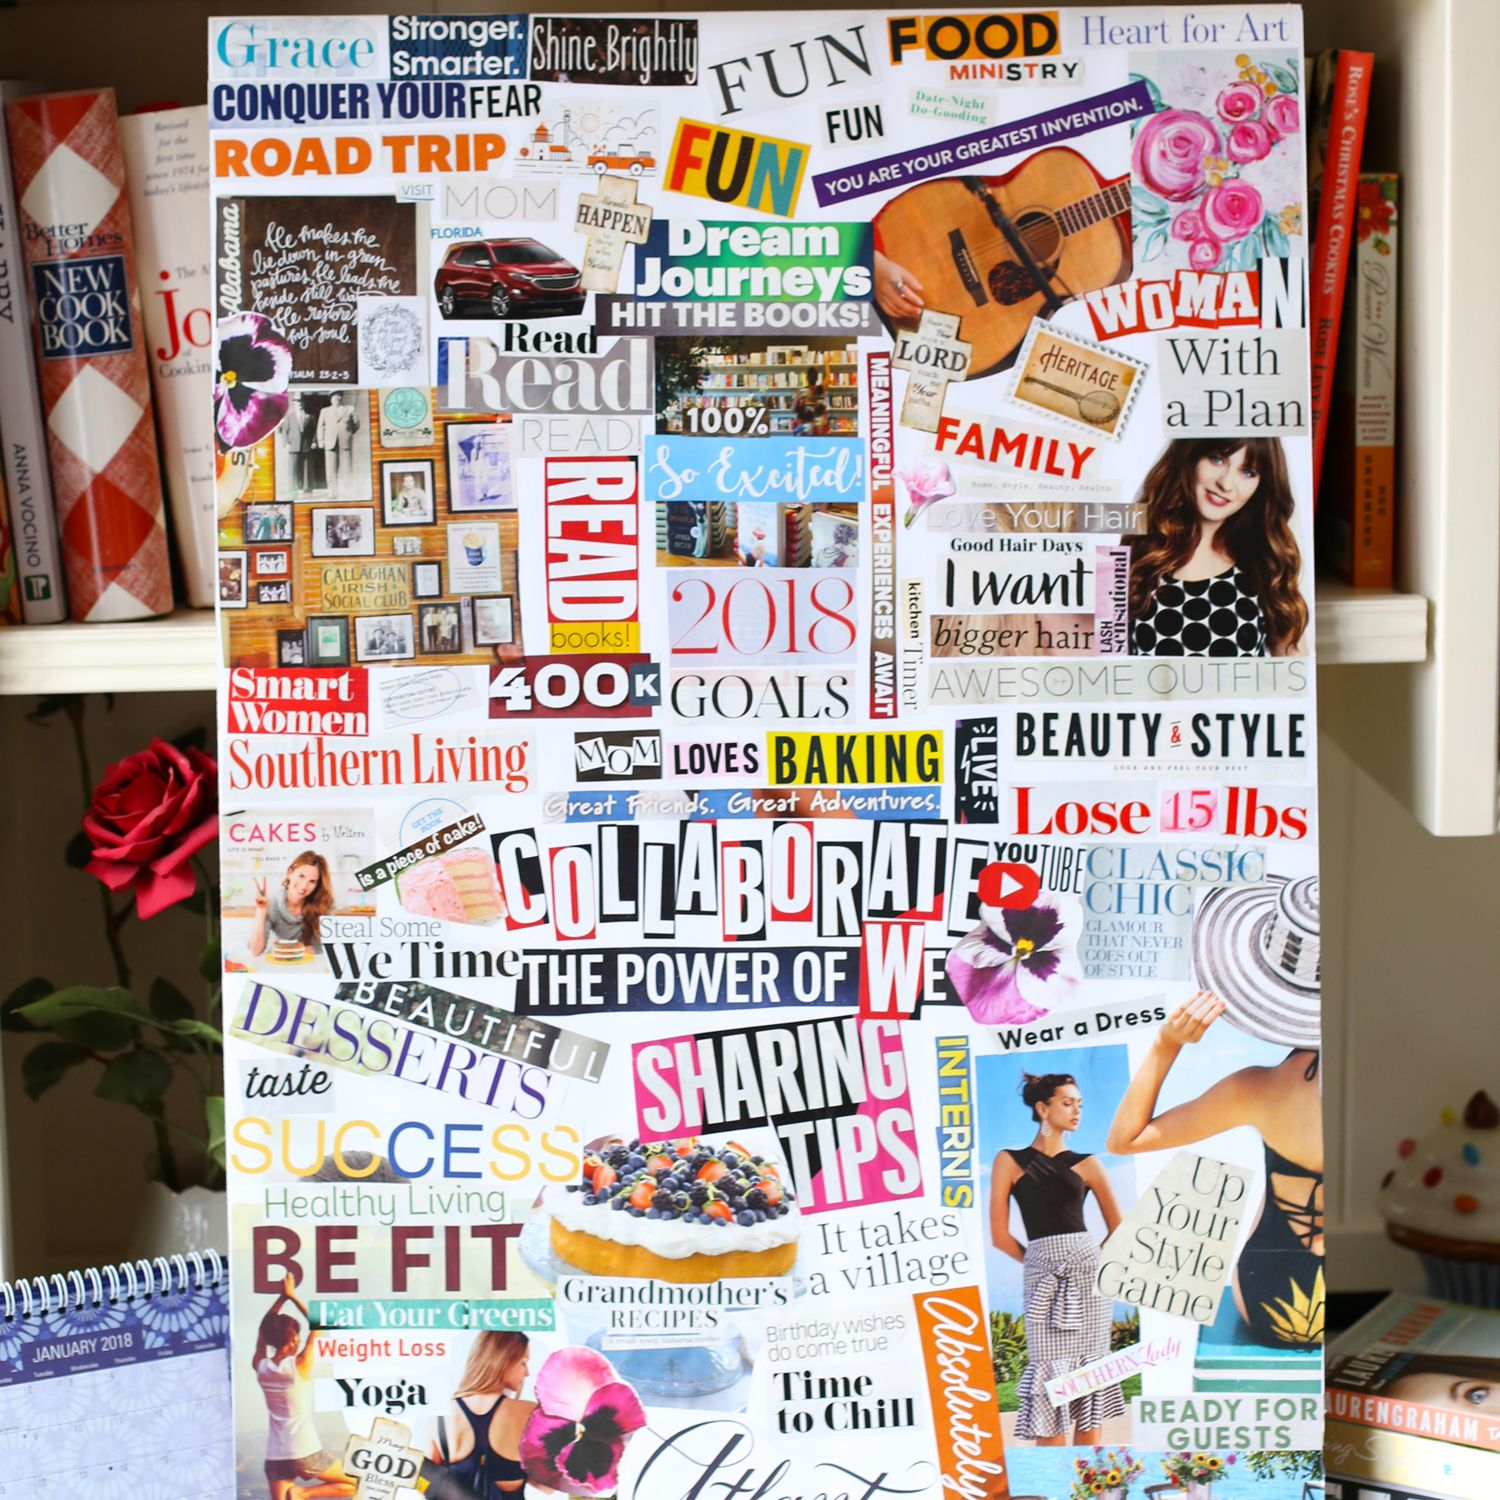 Kitchen Goals Heretomakelifeeasy: How To Create A Vision Board In 5 Easy Steps